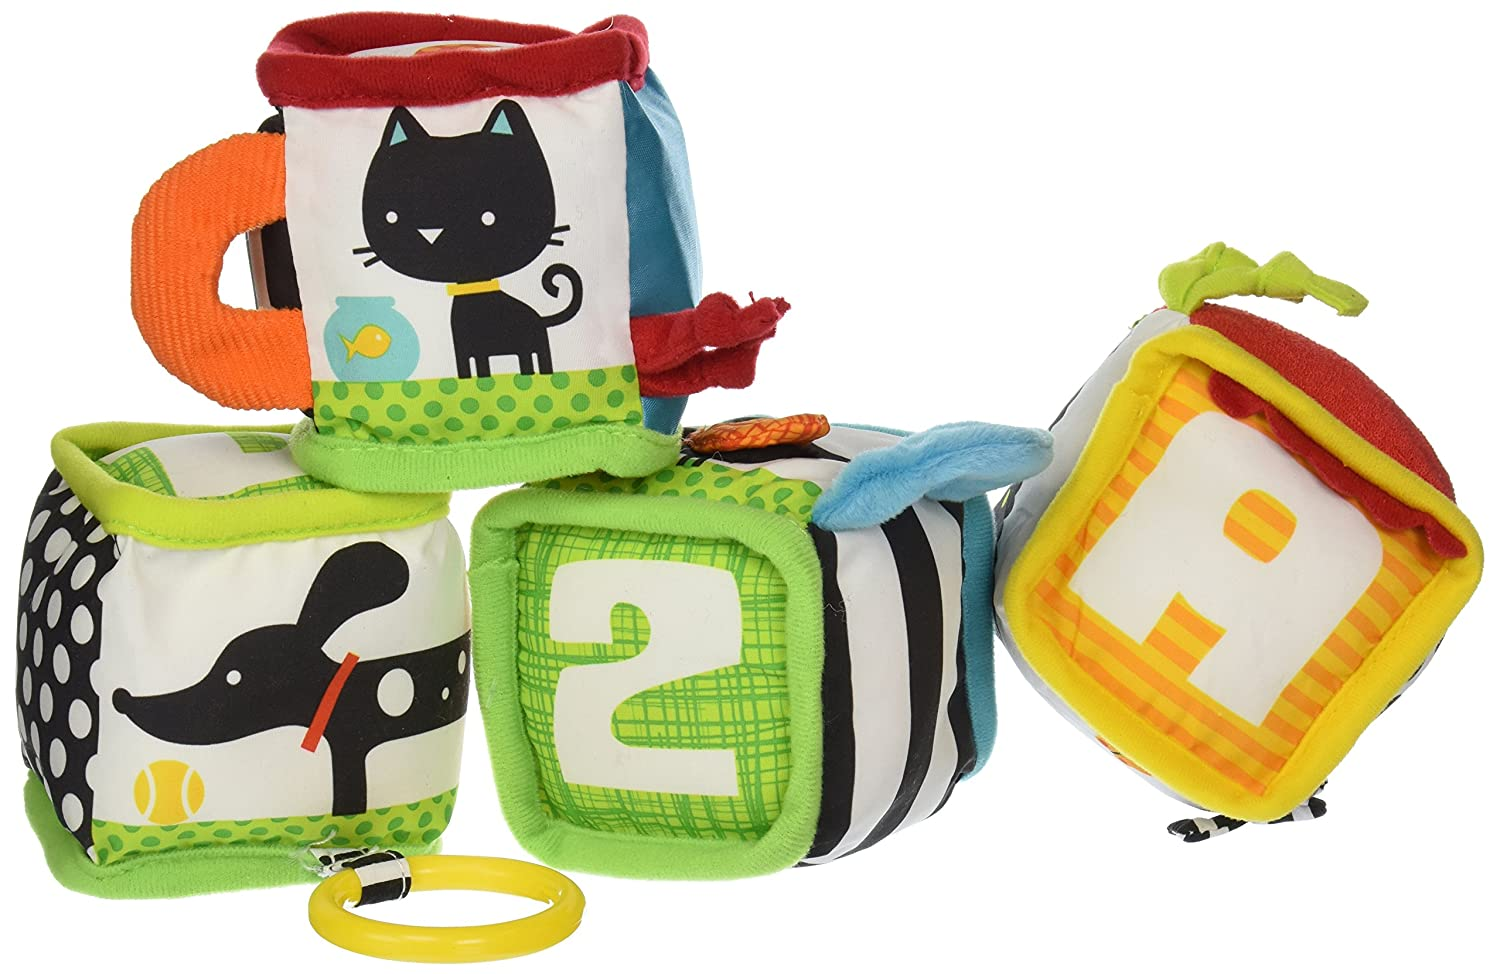 Infantino Discover and Play Soft Blocks Development Toy